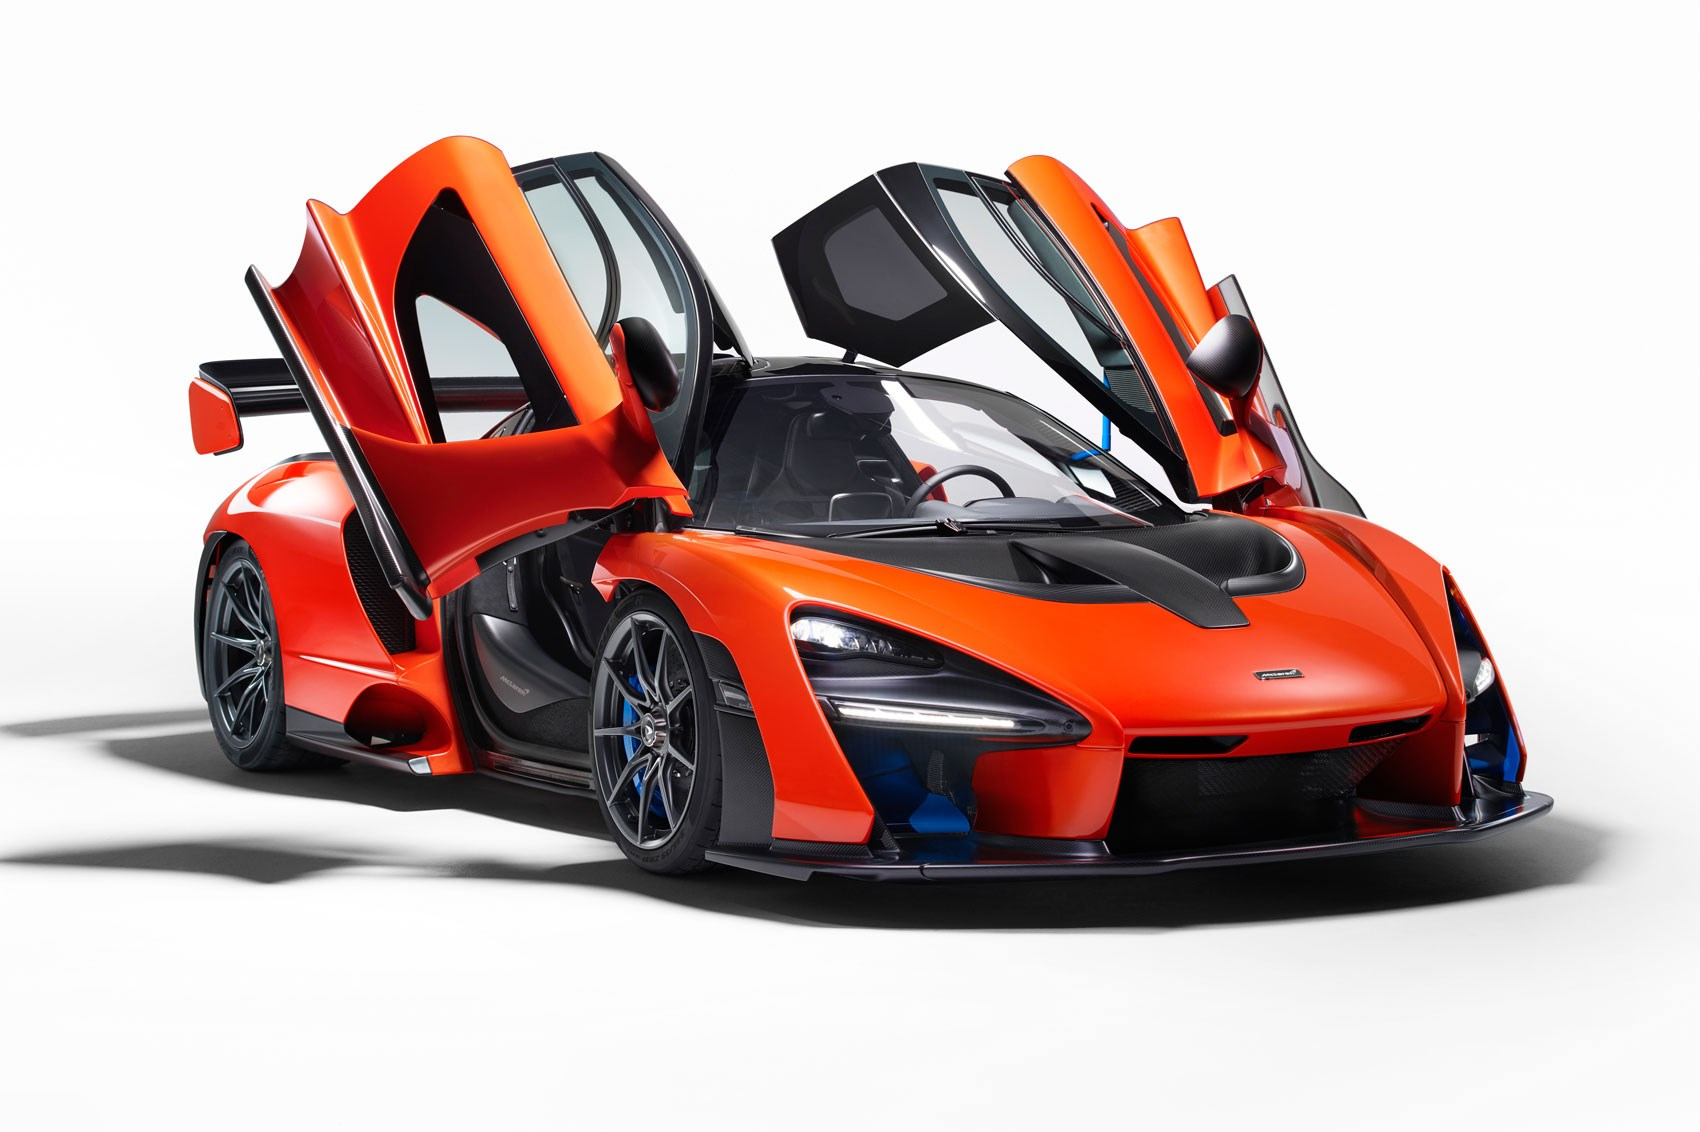 McLaren announces the Senna, its most extreme road auto  ever